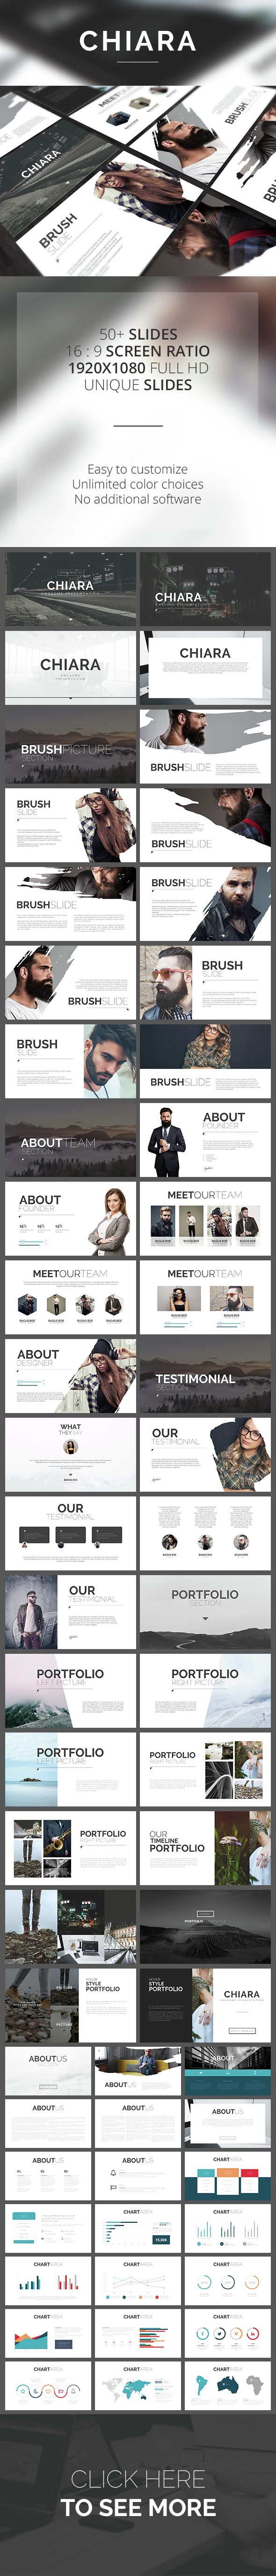 Chiara Keynote Template. Download here: http://graphicriver.net/item/chiara-keynote-template/15235921?ref=ksioks